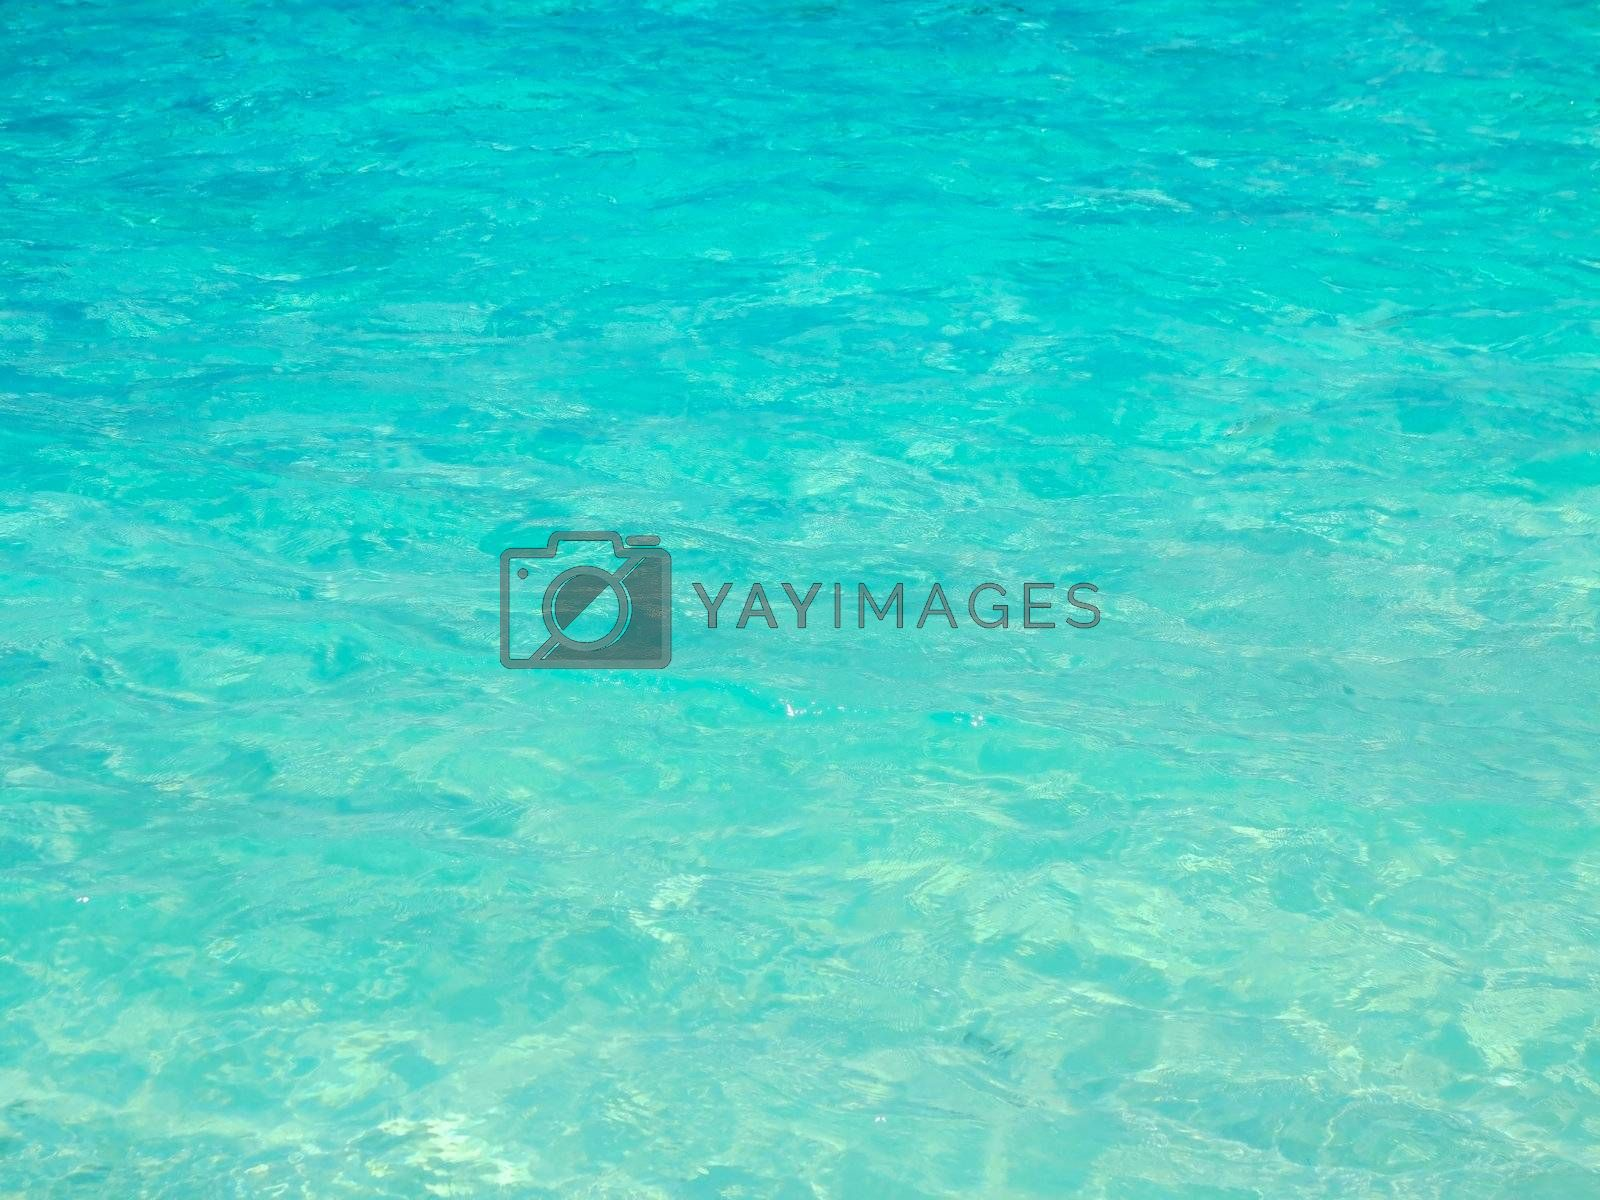 Blue Ocean Photo Background. Calm Ocean Waters. Nature Photo Collection.